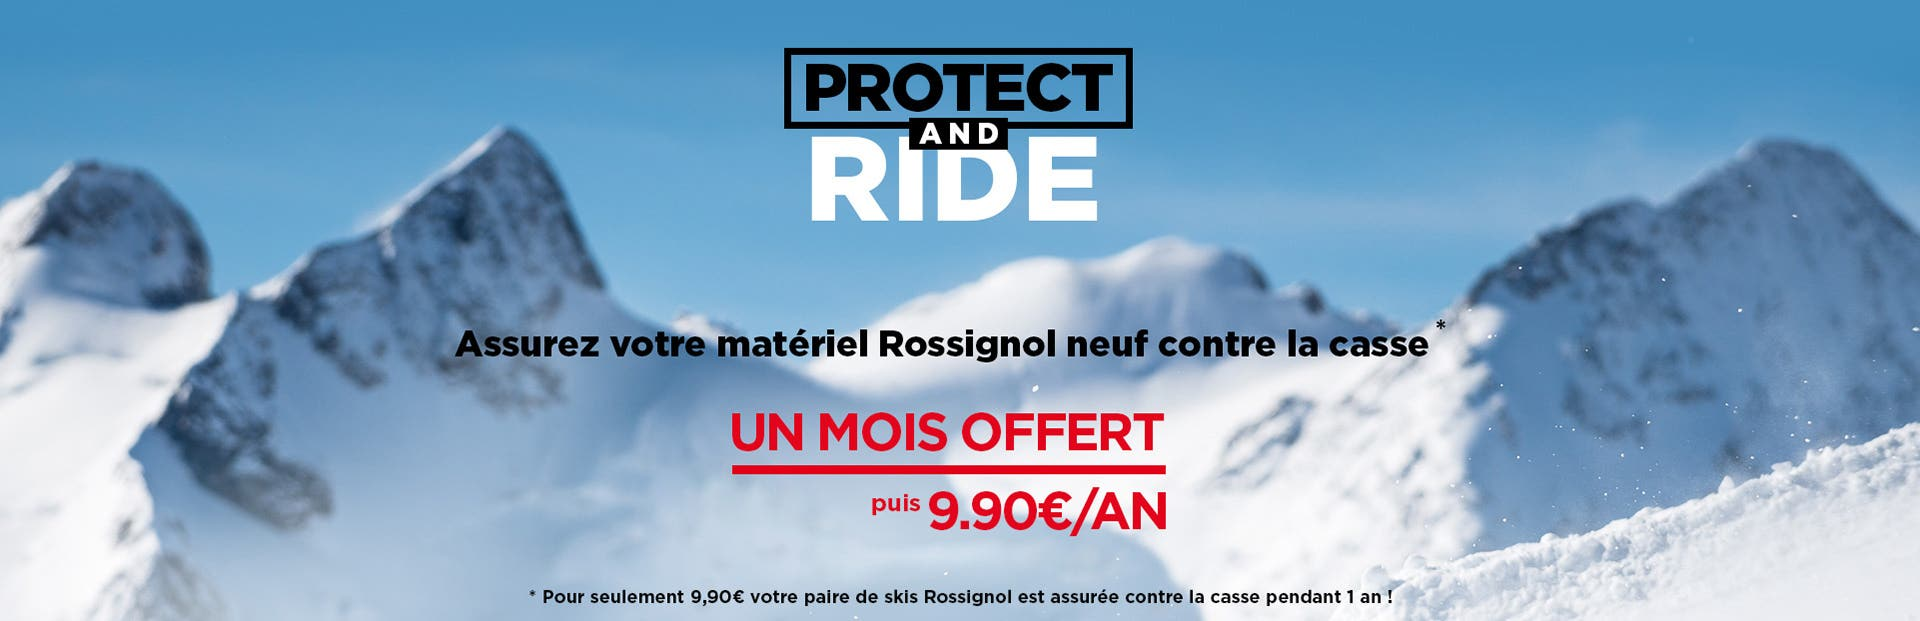 protect and ride